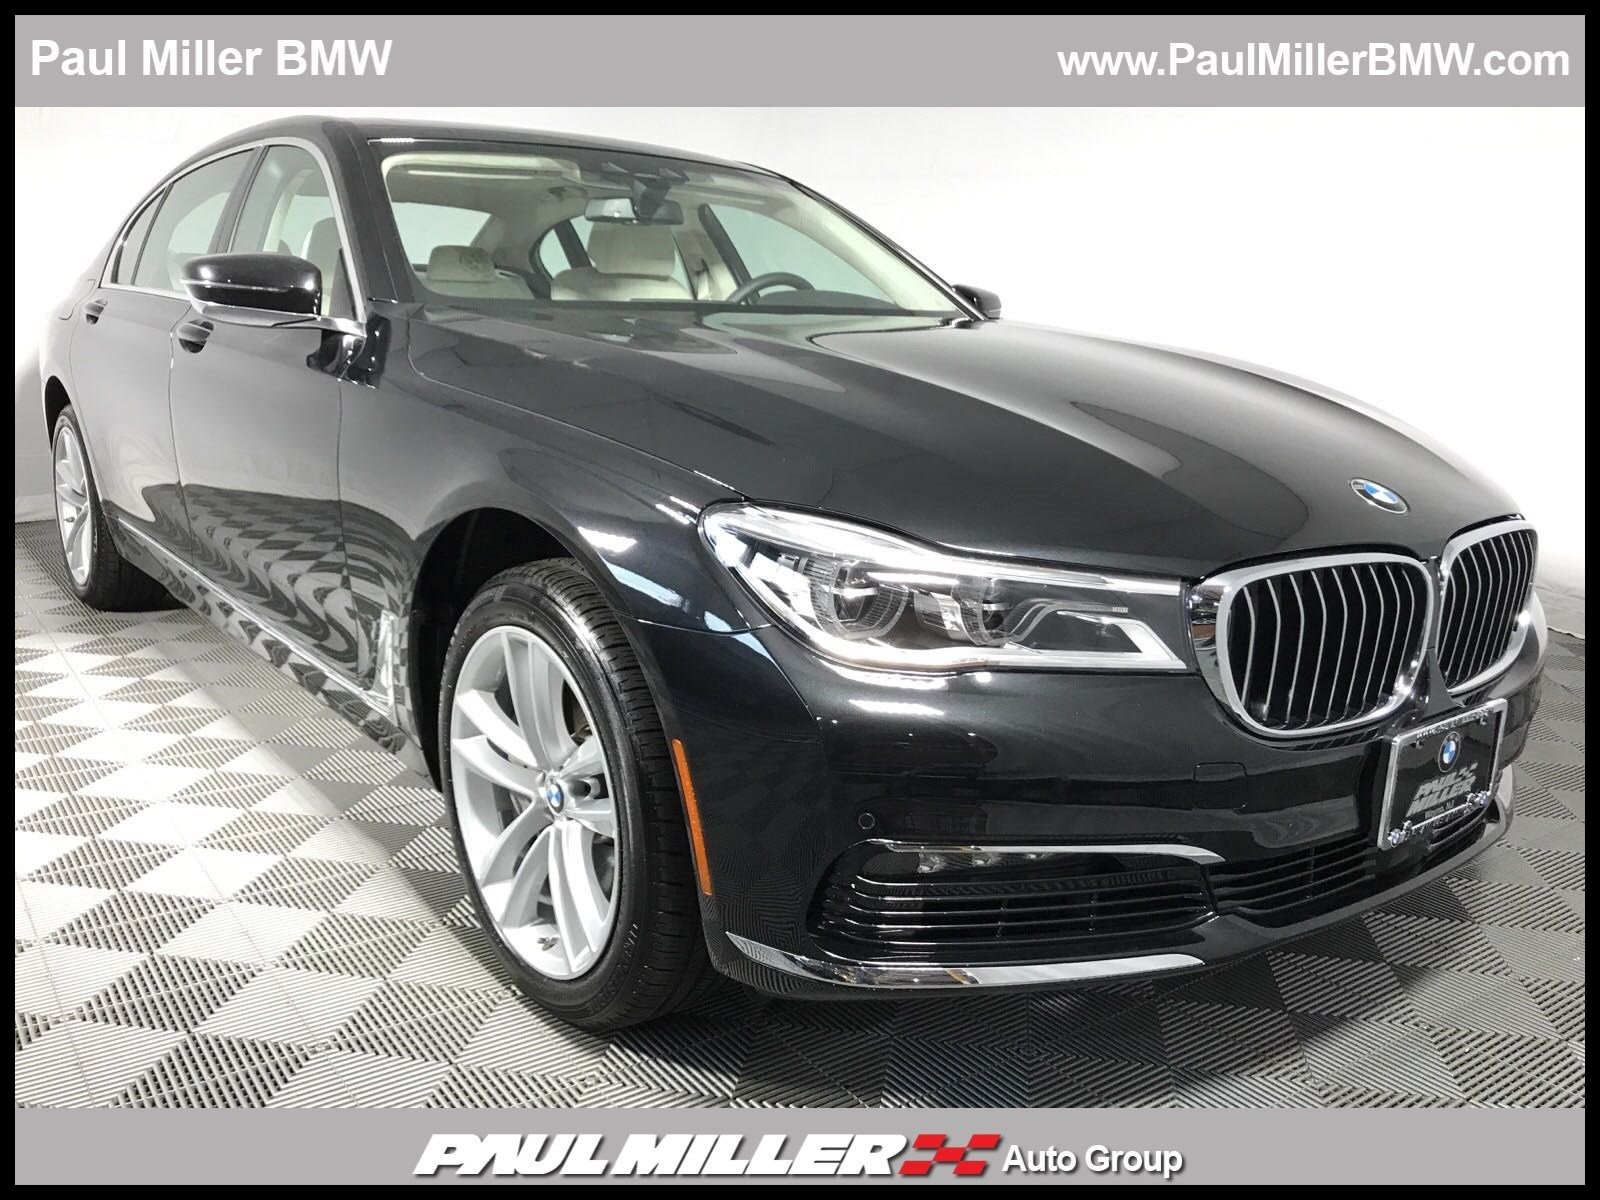 Paul Miller Bmw New Jersey Unique Certified Pre Owned 2018 Bmw 7 Series 4dr Car In